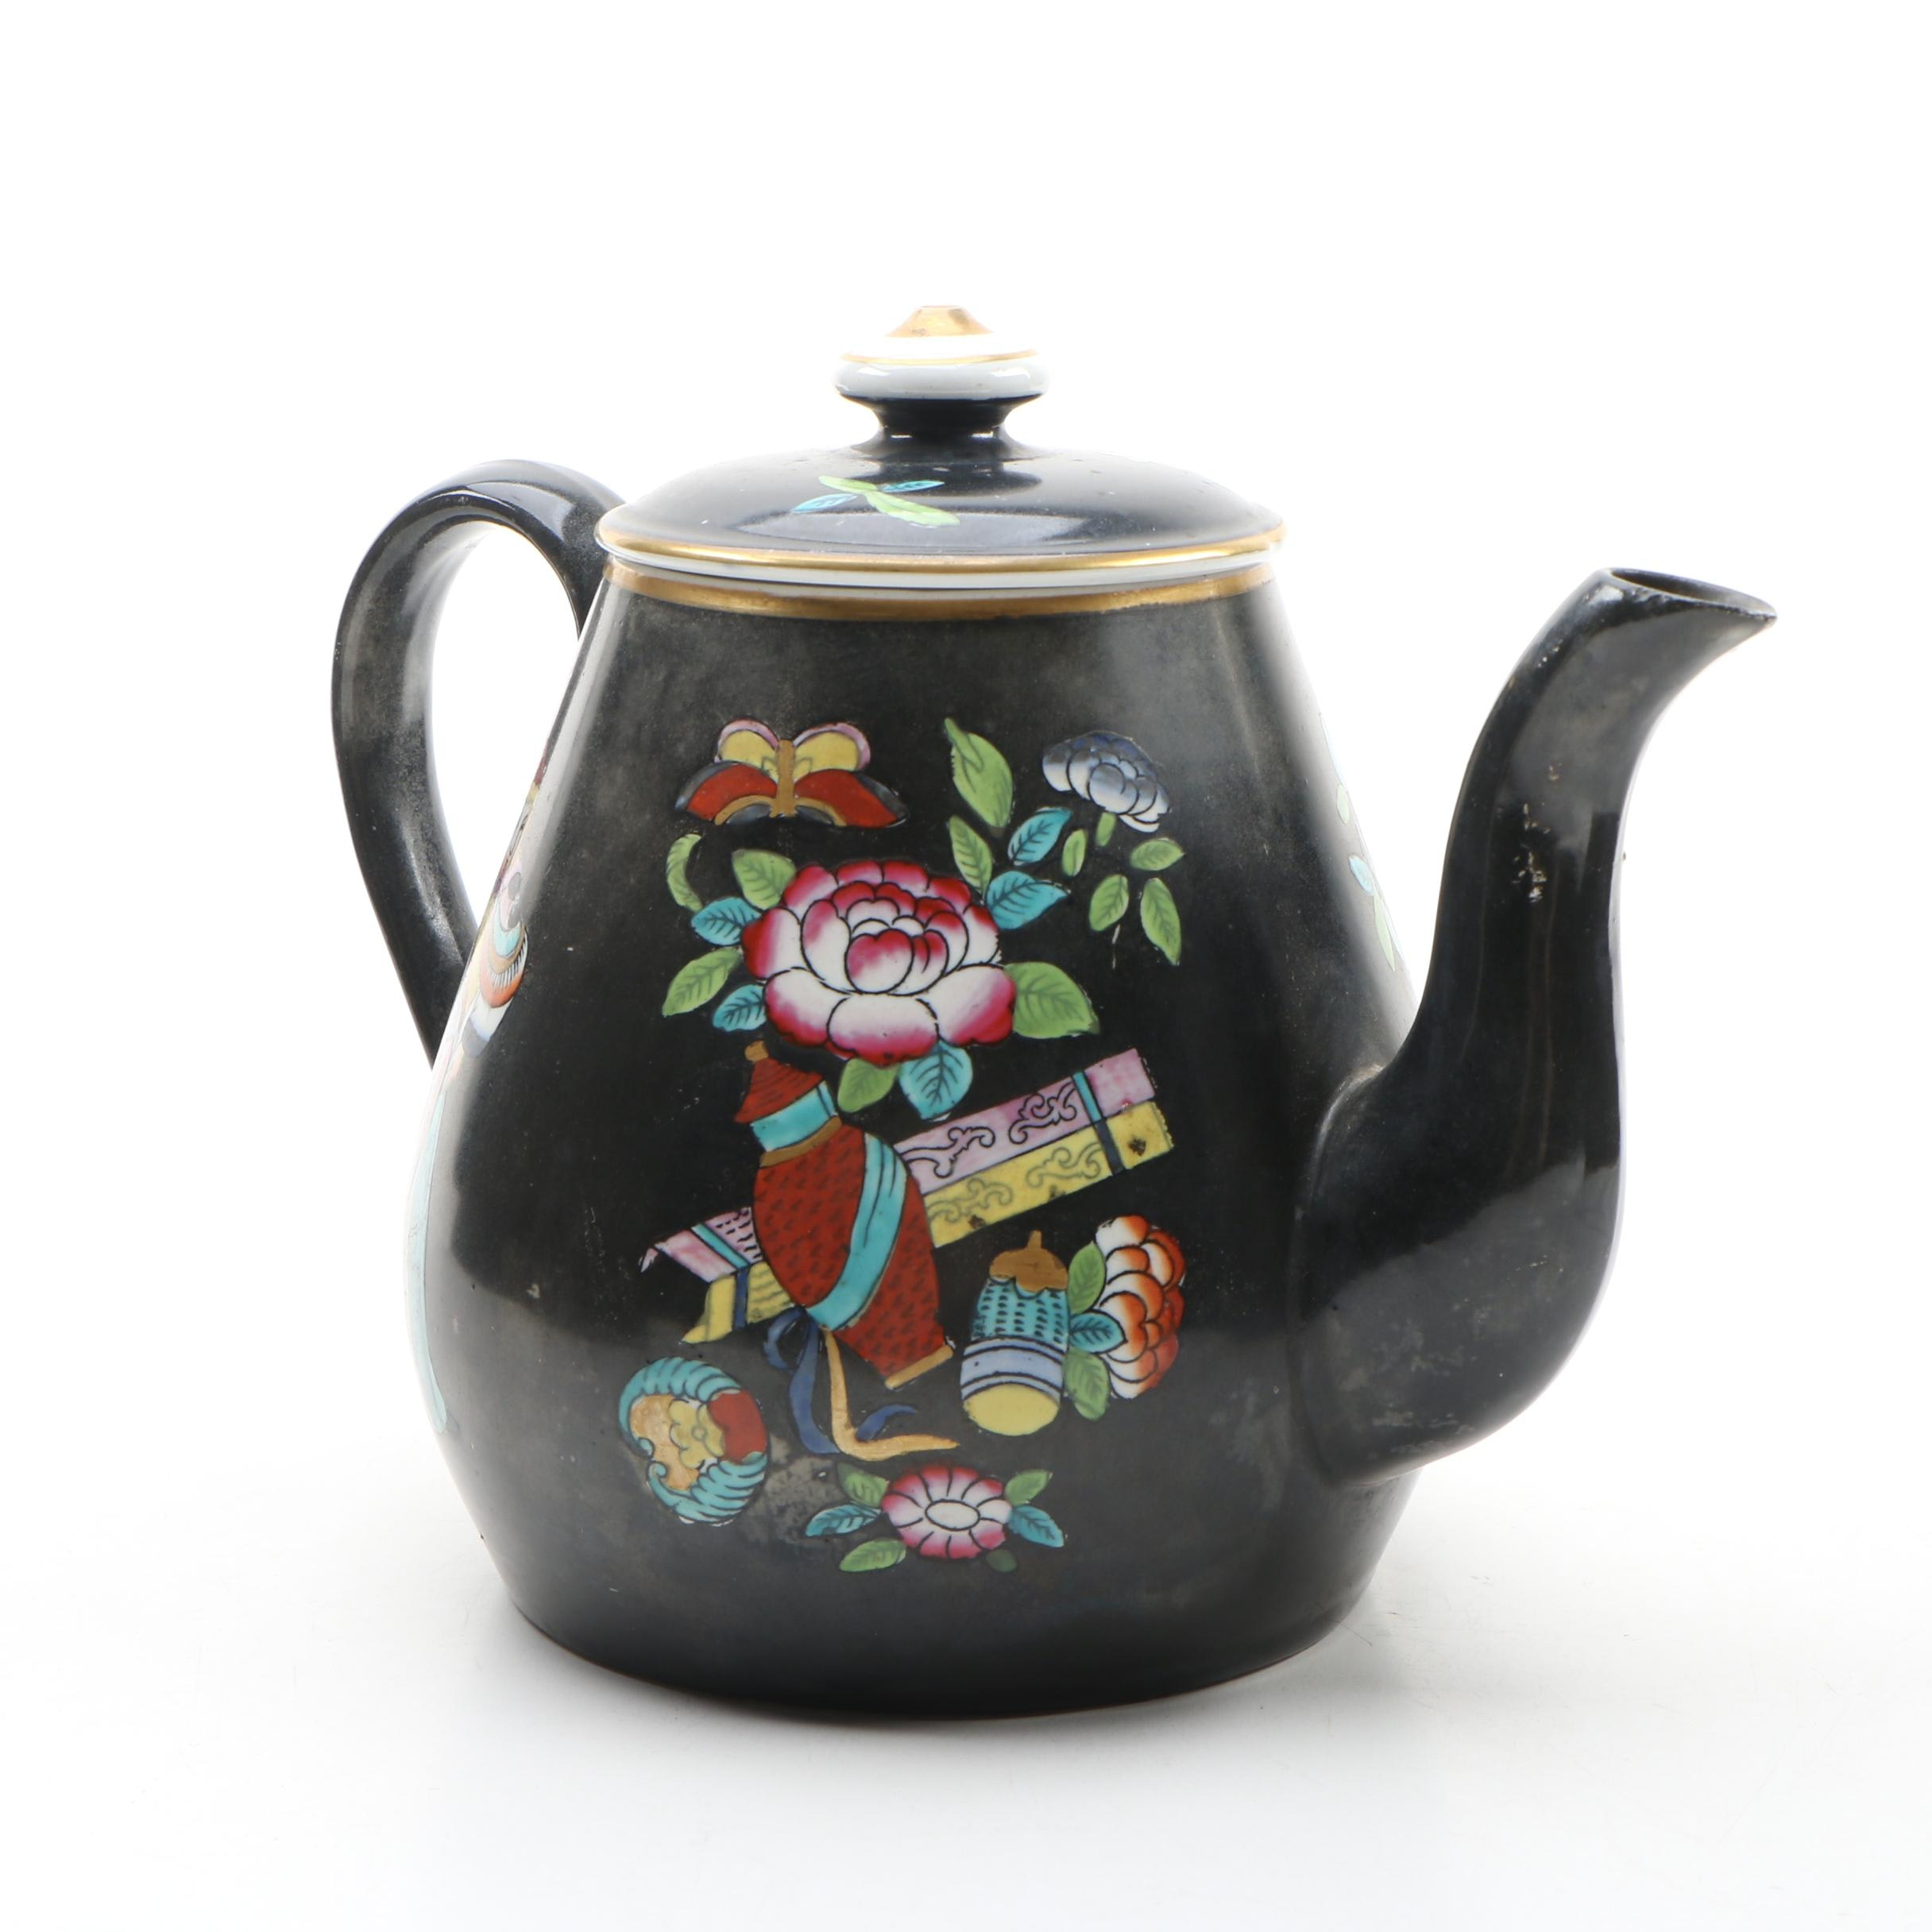 East Asian Style Teapot